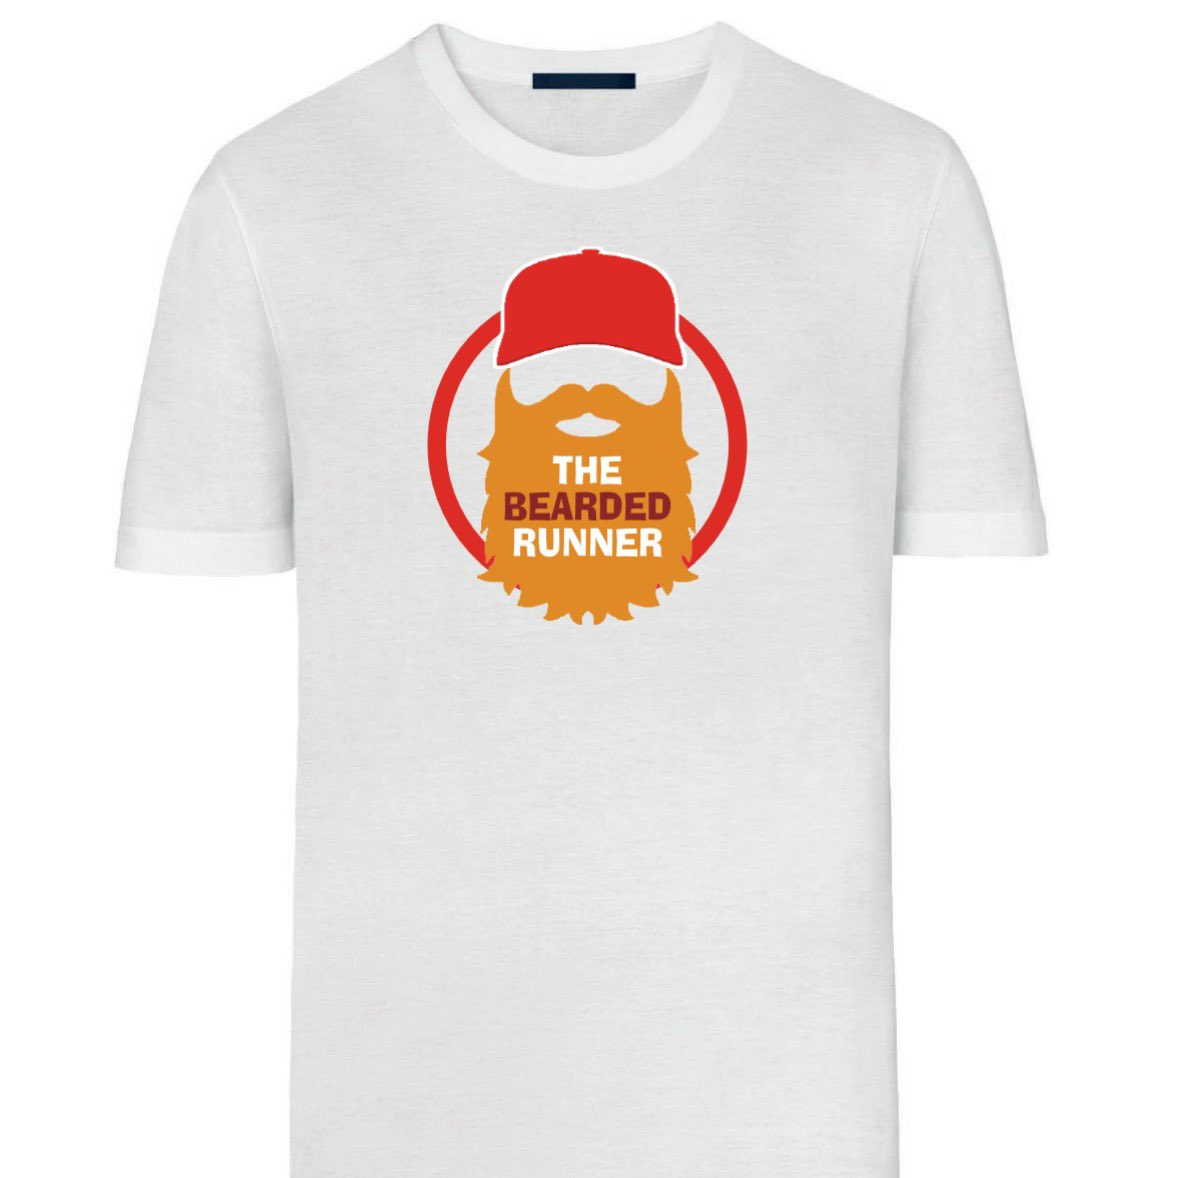 You can now buy The Bearded Runner t-shirts and caps Send us a DM and we'll get them out to you T-shirts £15.80 Caps £9.60 All profits go to @andysmanclubuk and @MindCharity #marathonrunner #MentalHealthAwareness #raisingmoney #raisingawareness